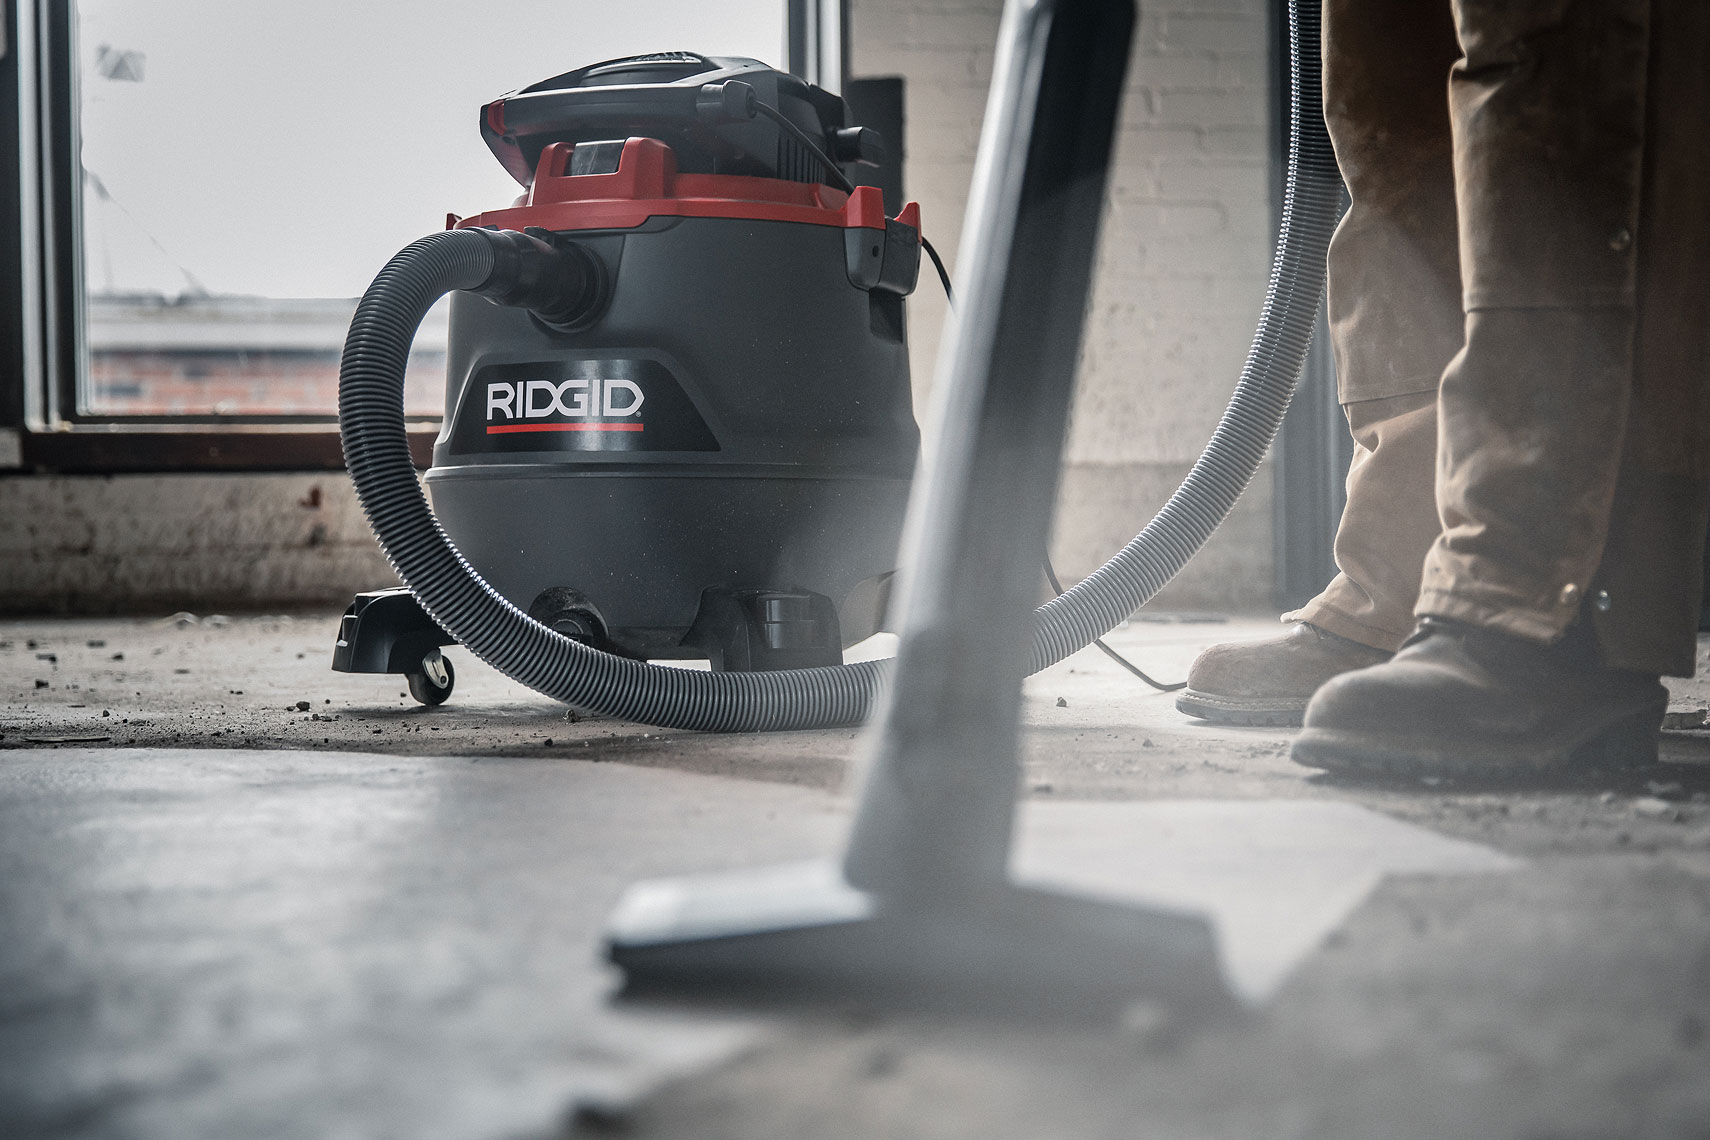 RIDGID RED RT1200 Wet/Dry Vacuum | John Fedele Product Photography